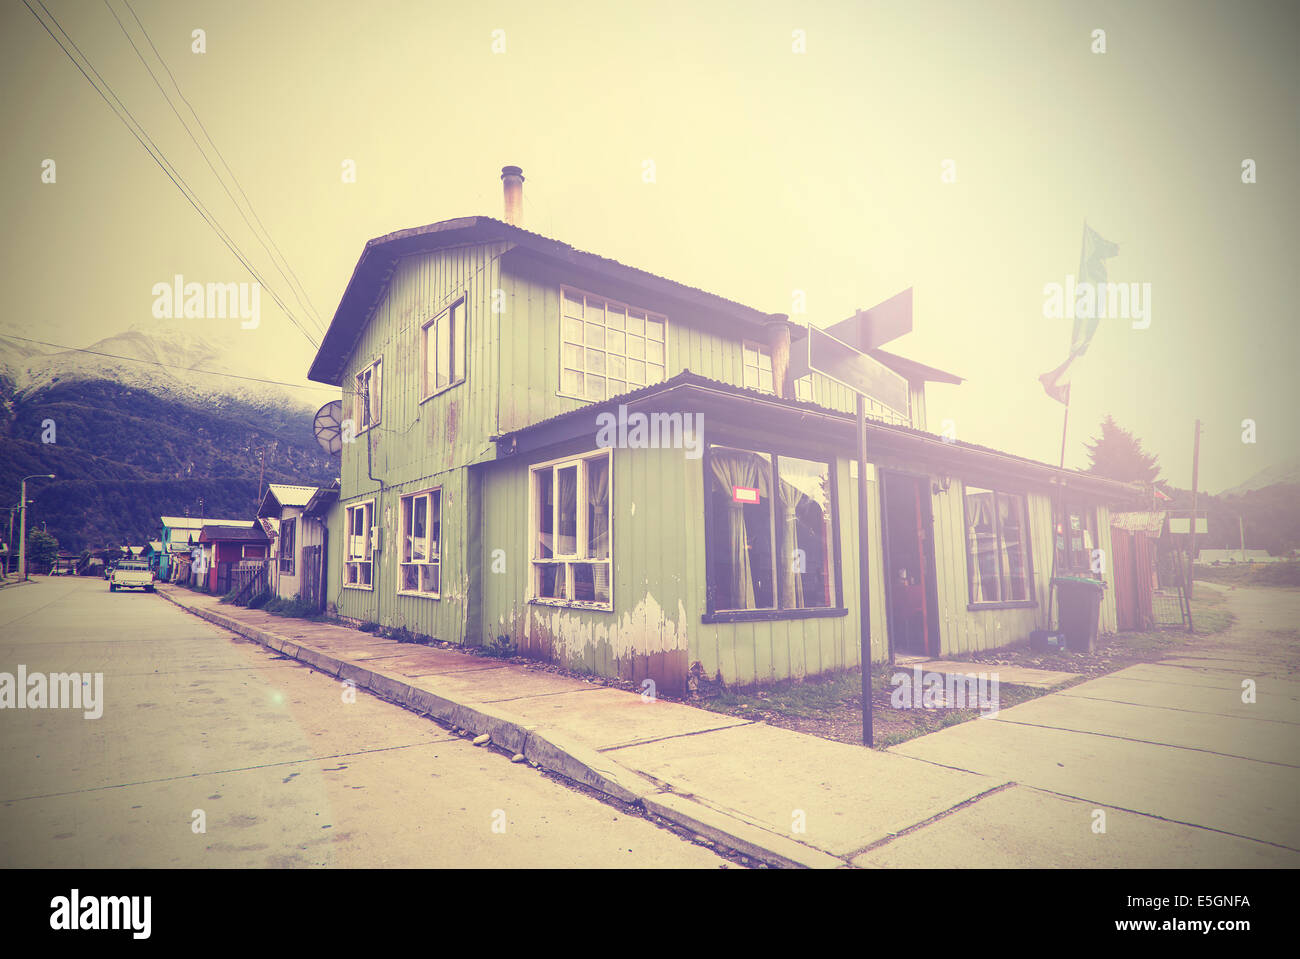 Vintage picture of mountain village street. - Stock Image